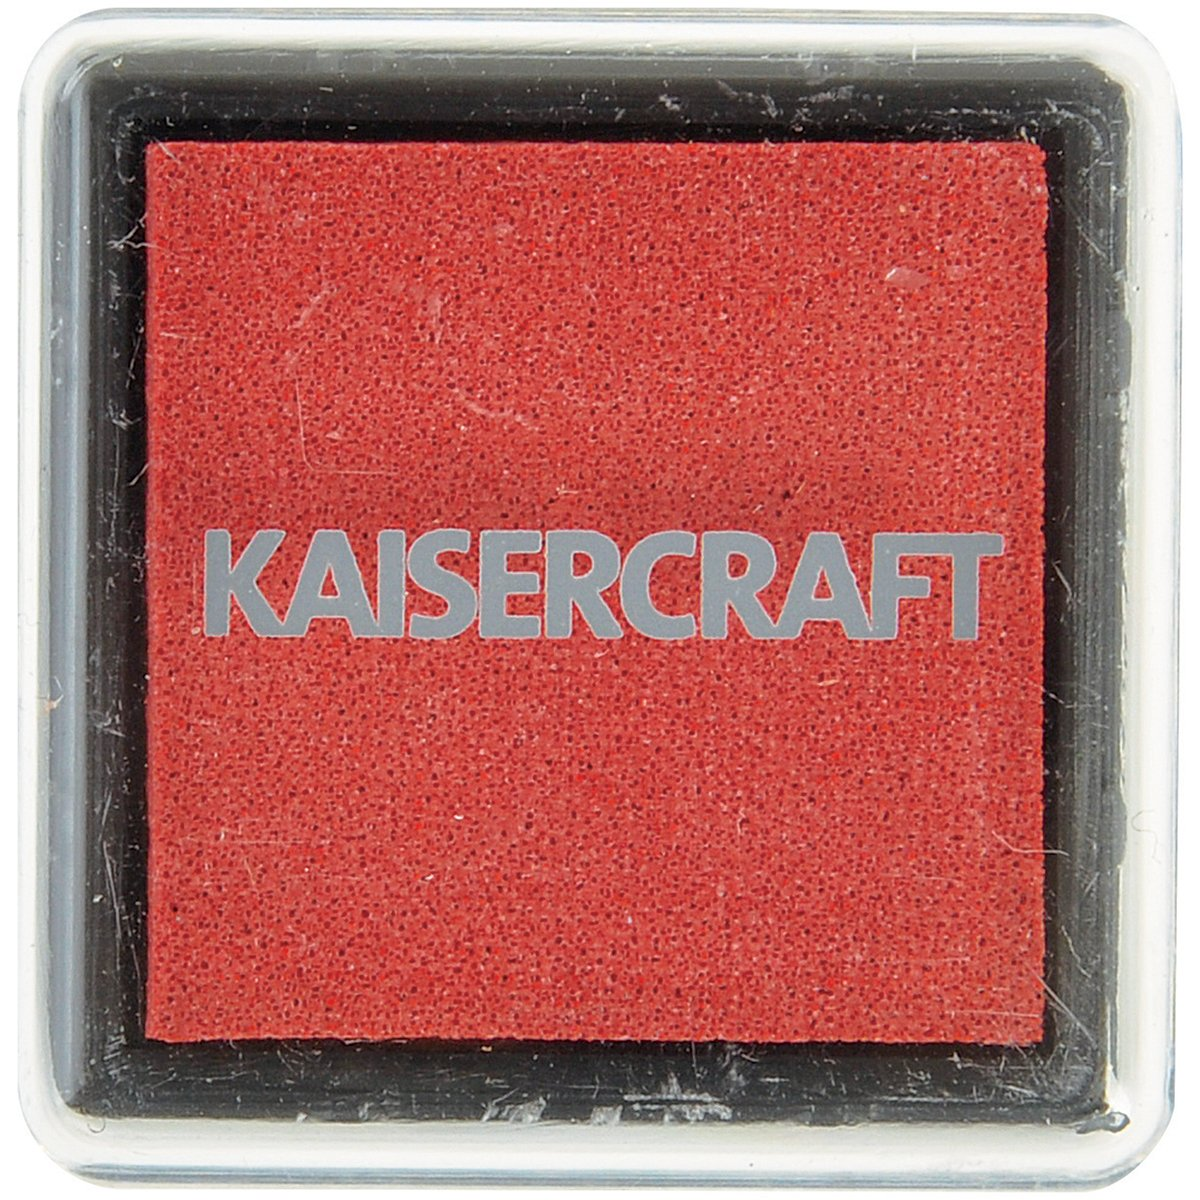 Kaisercraft Ink Pad, 1.5x1.5-Inch, Red IP734